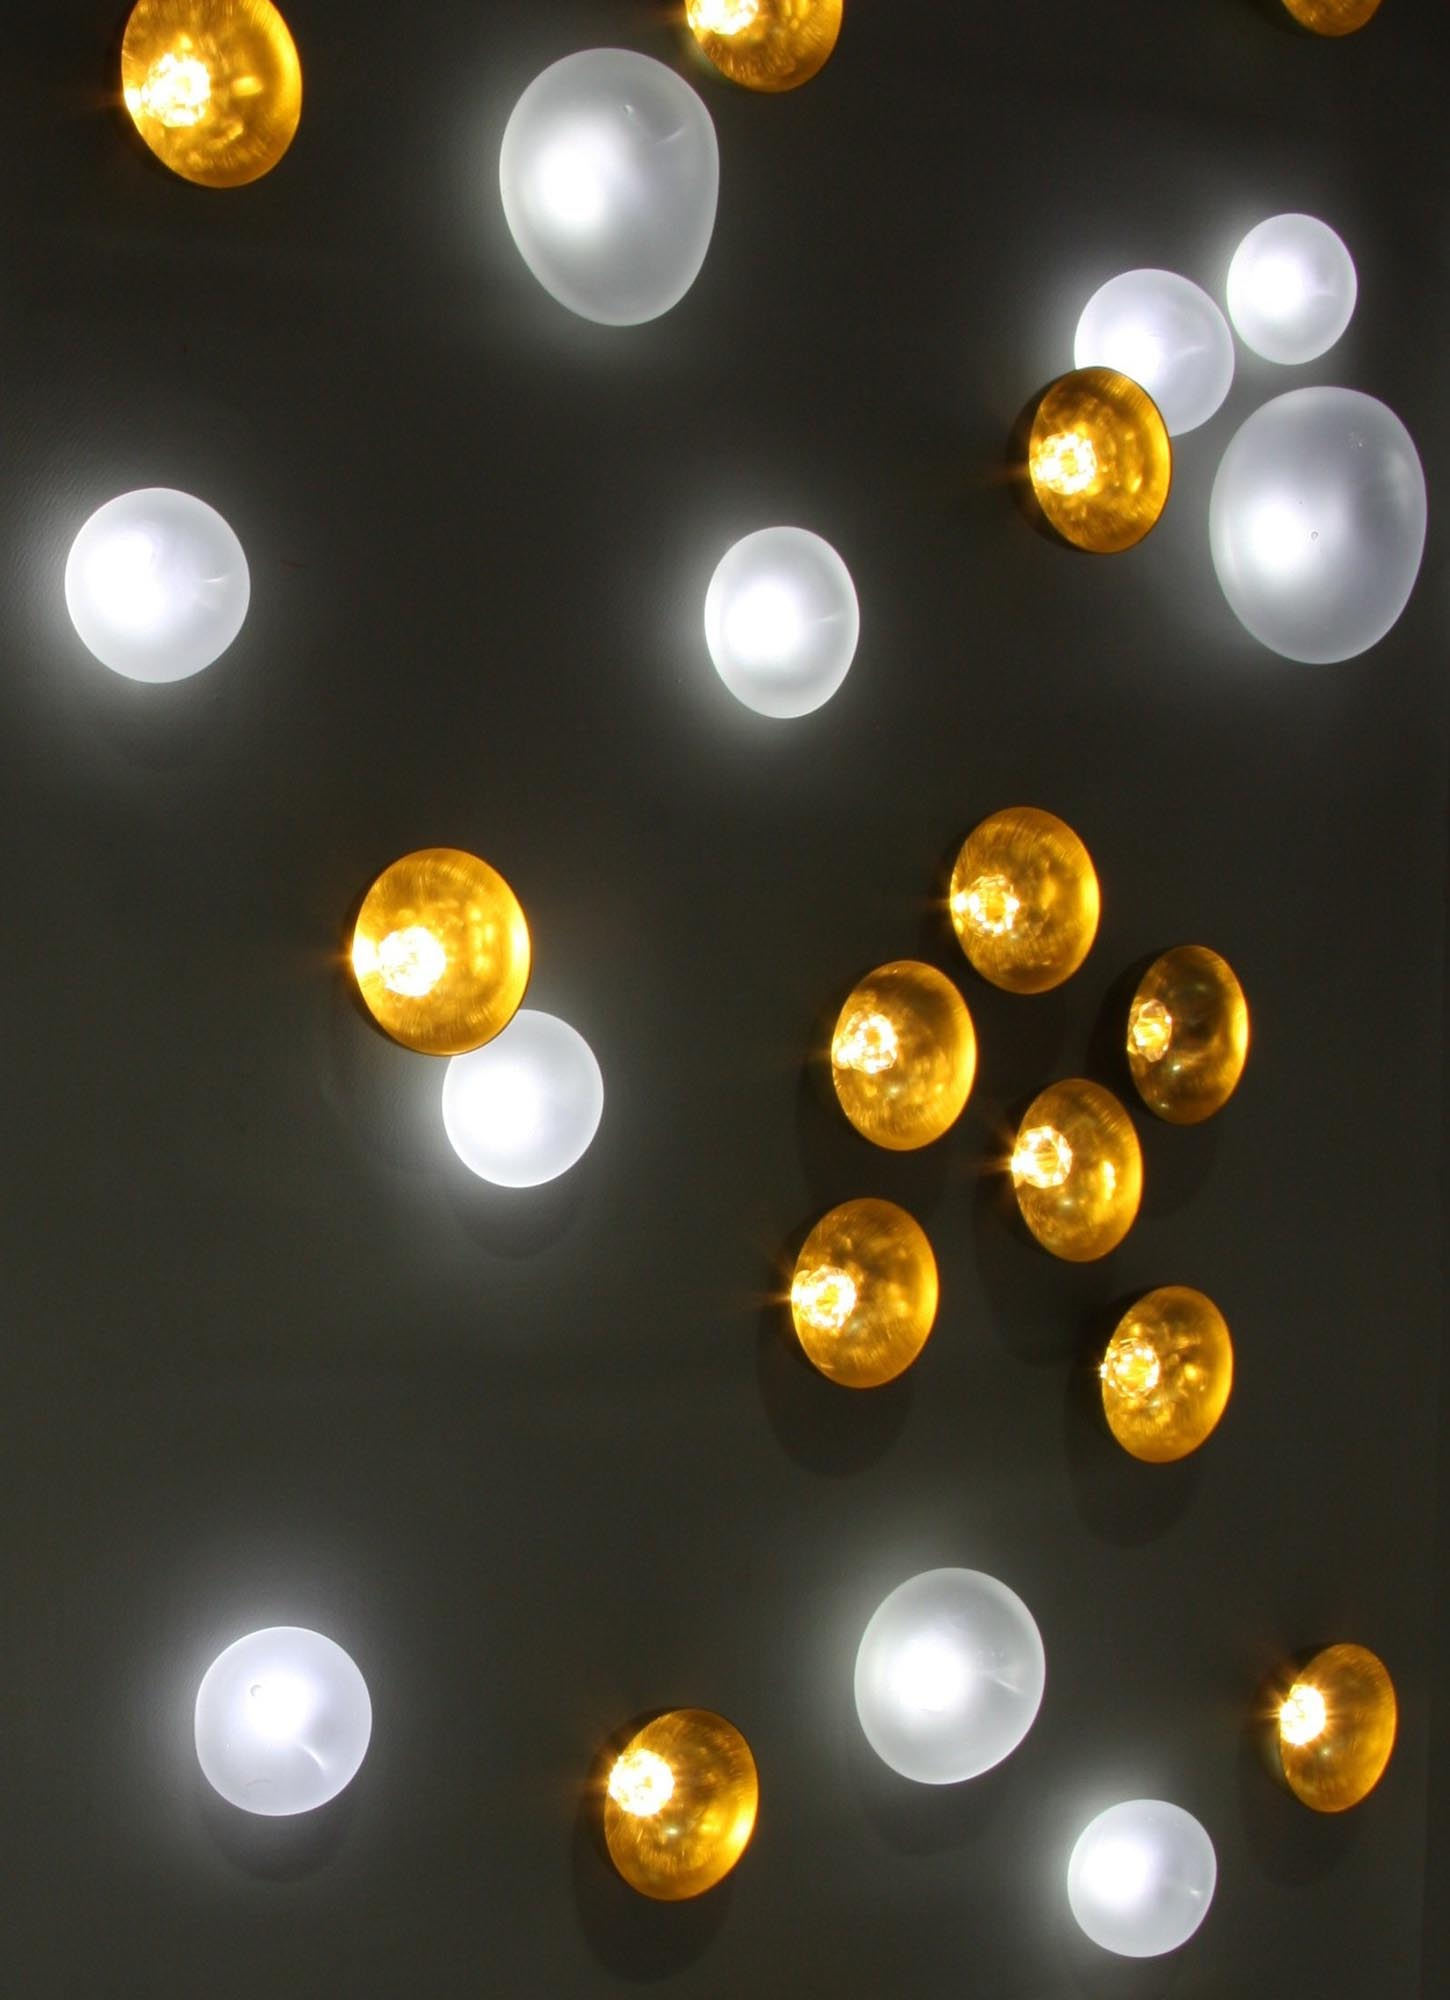 Nénuphars, brass, crystal, warm white LEDs